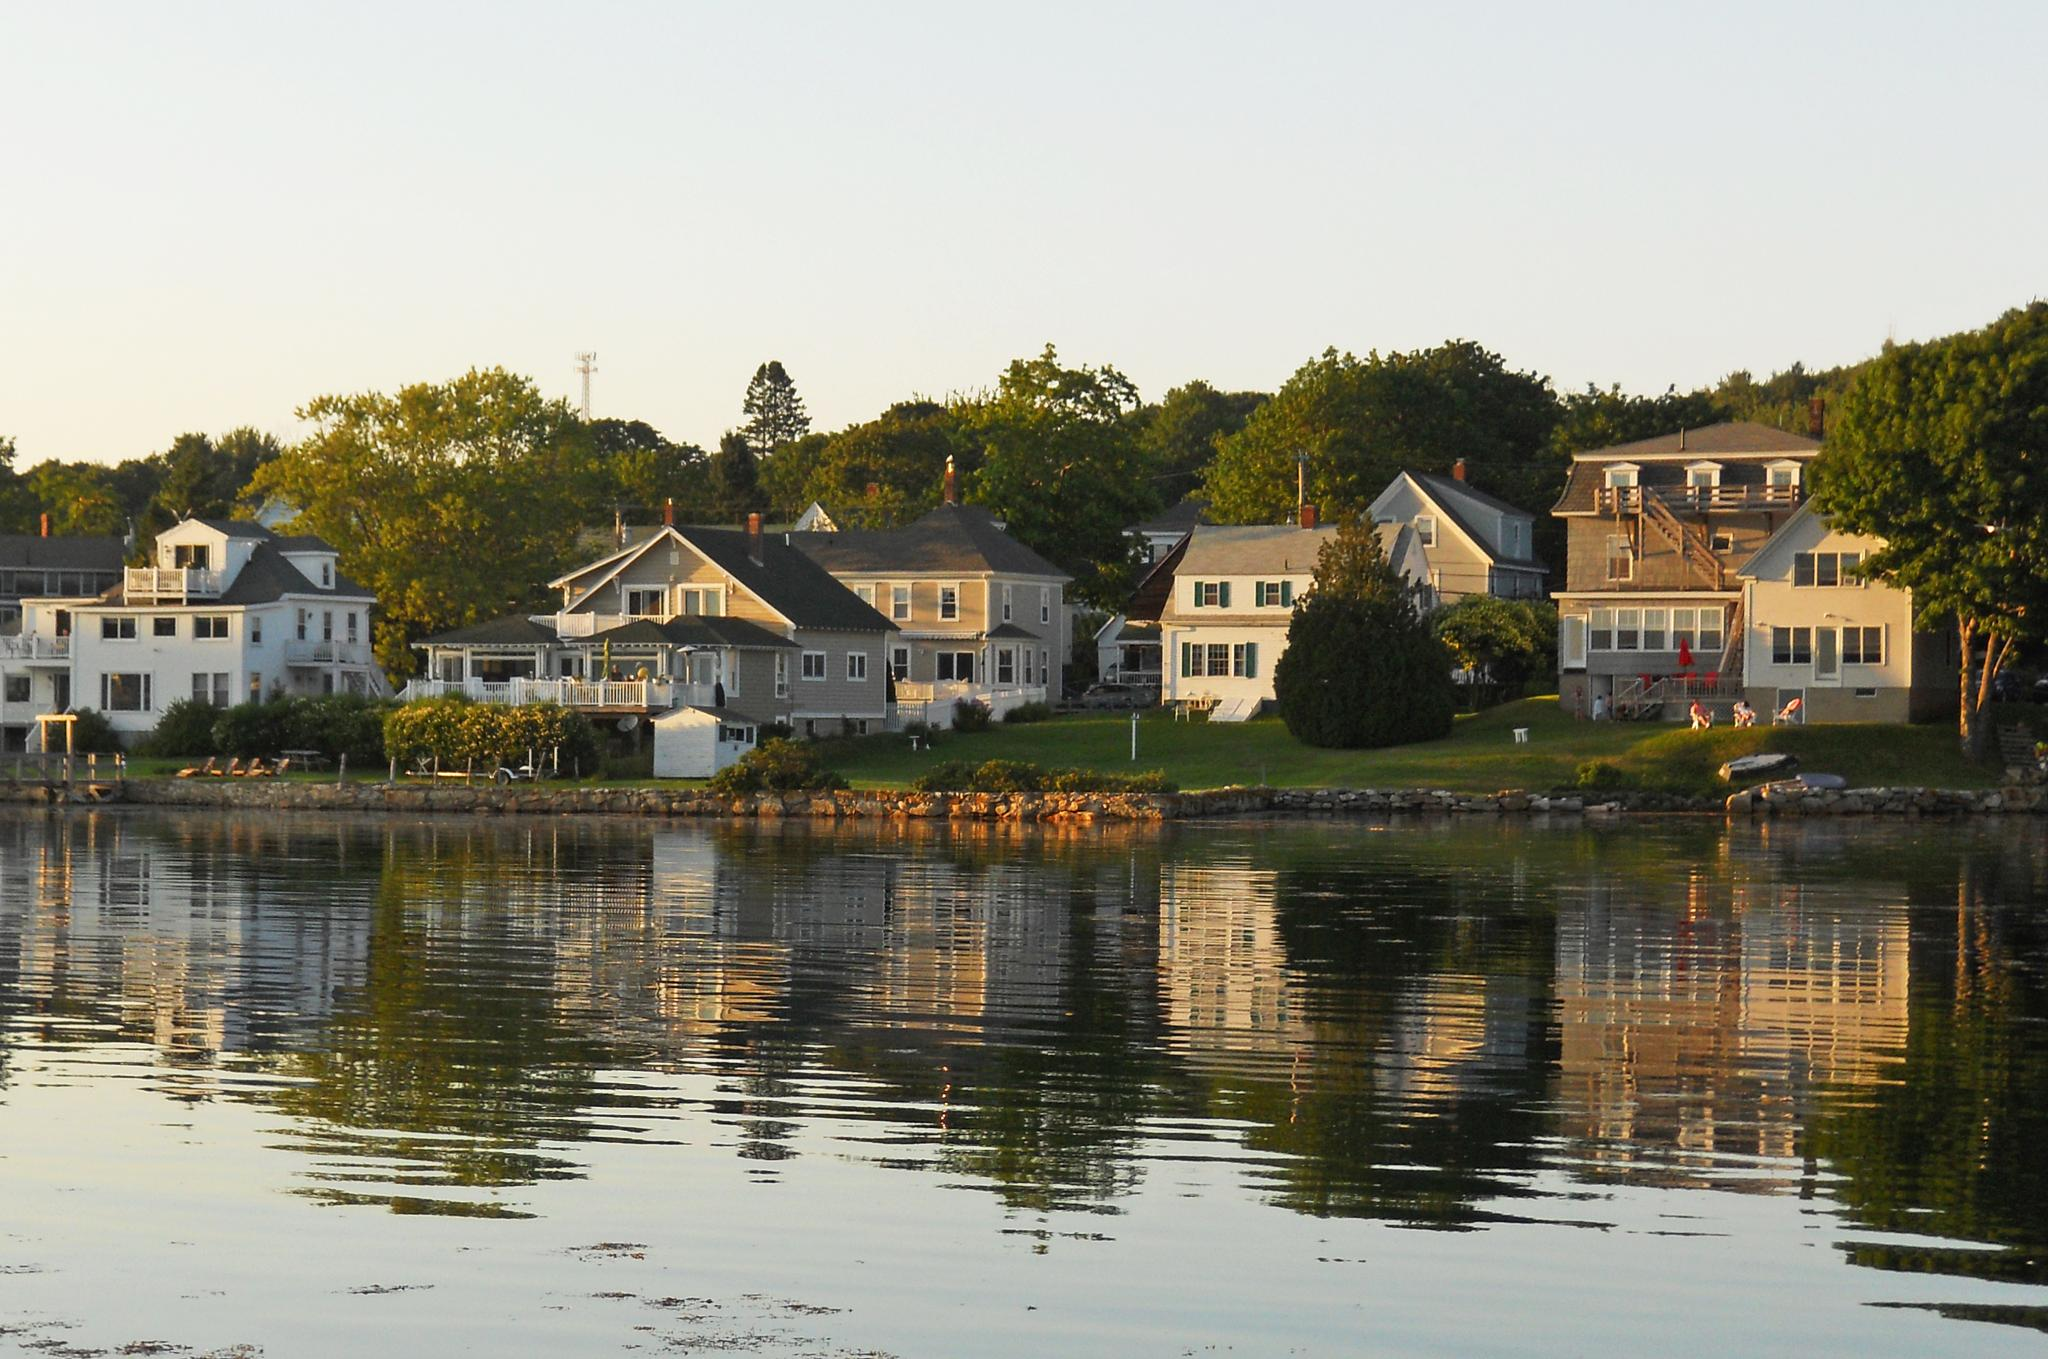 Boothbay Homes by WCGPhoto1